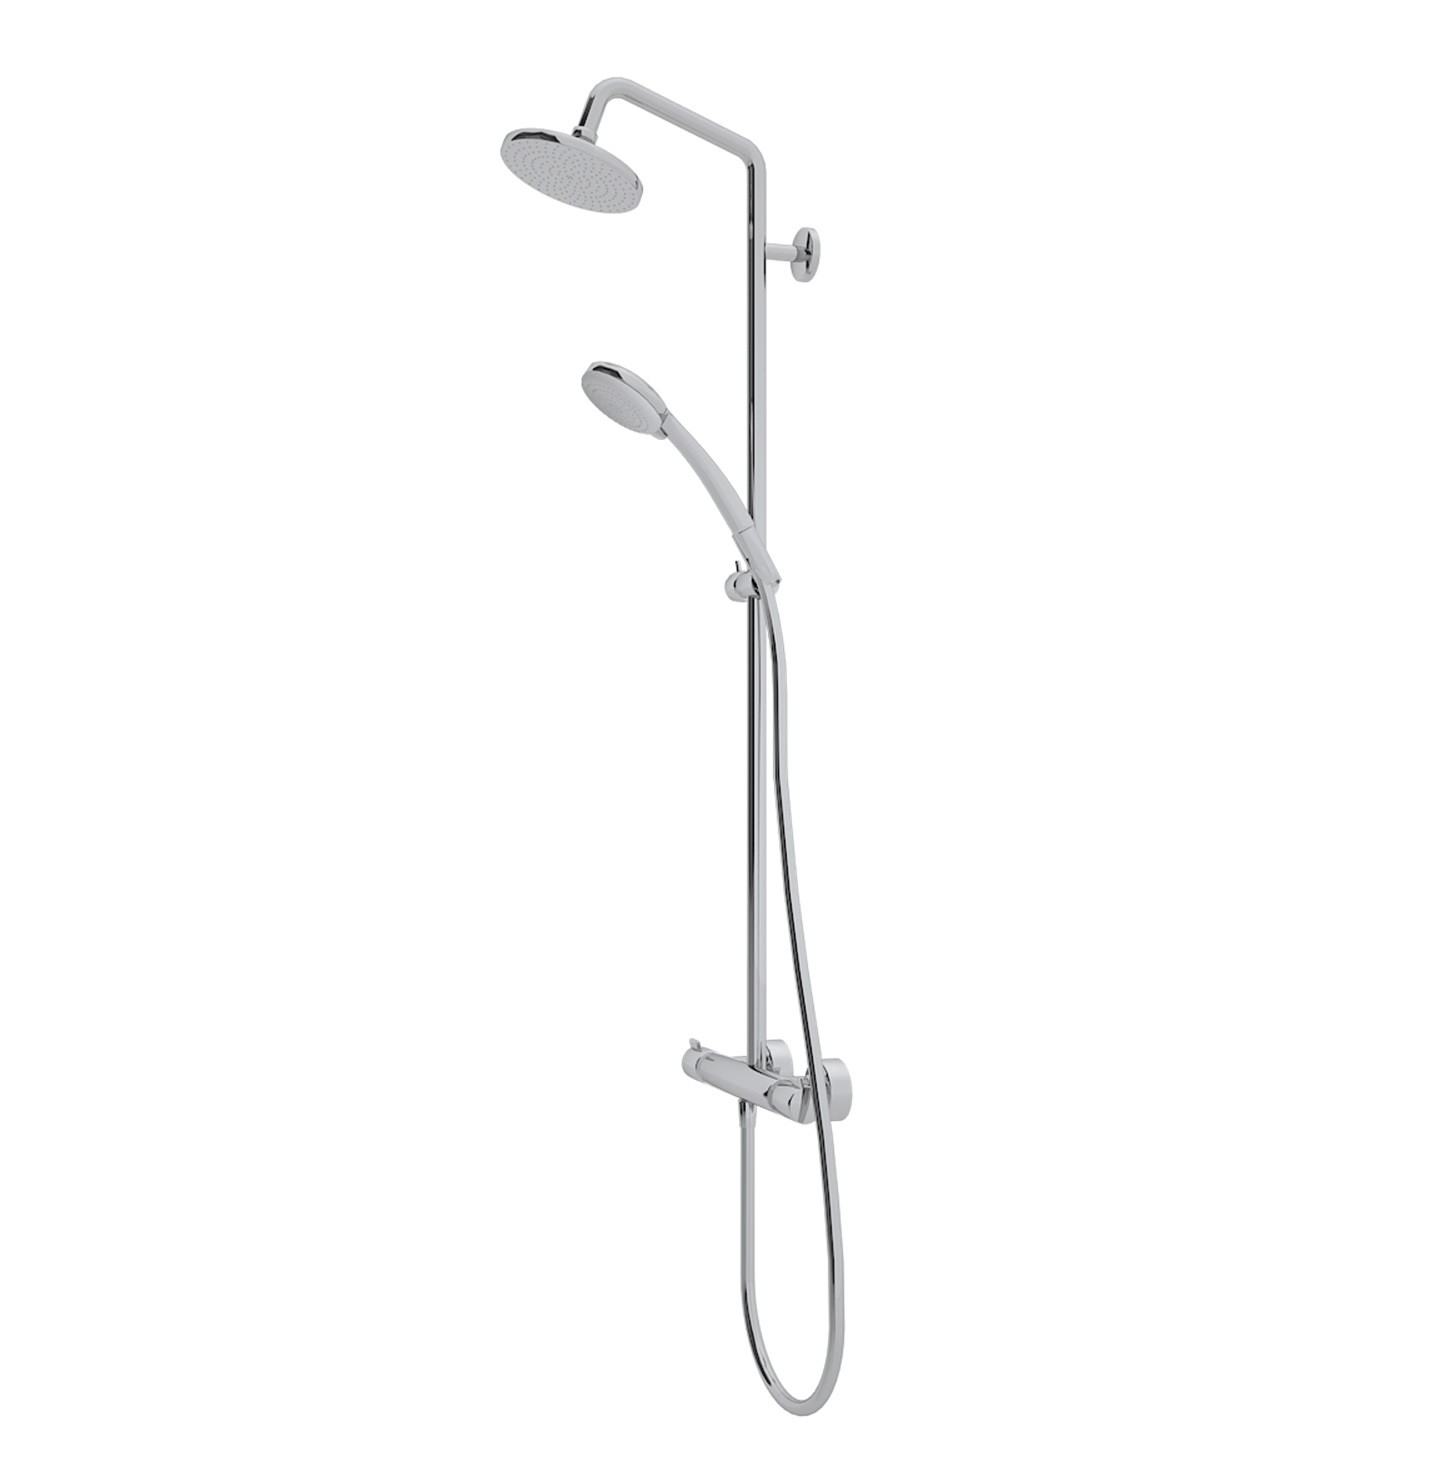 hansgrohe croma shower system showerpipe 160 1jet with thermostatic mixer xtwostore. Black Bedroom Furniture Sets. Home Design Ideas